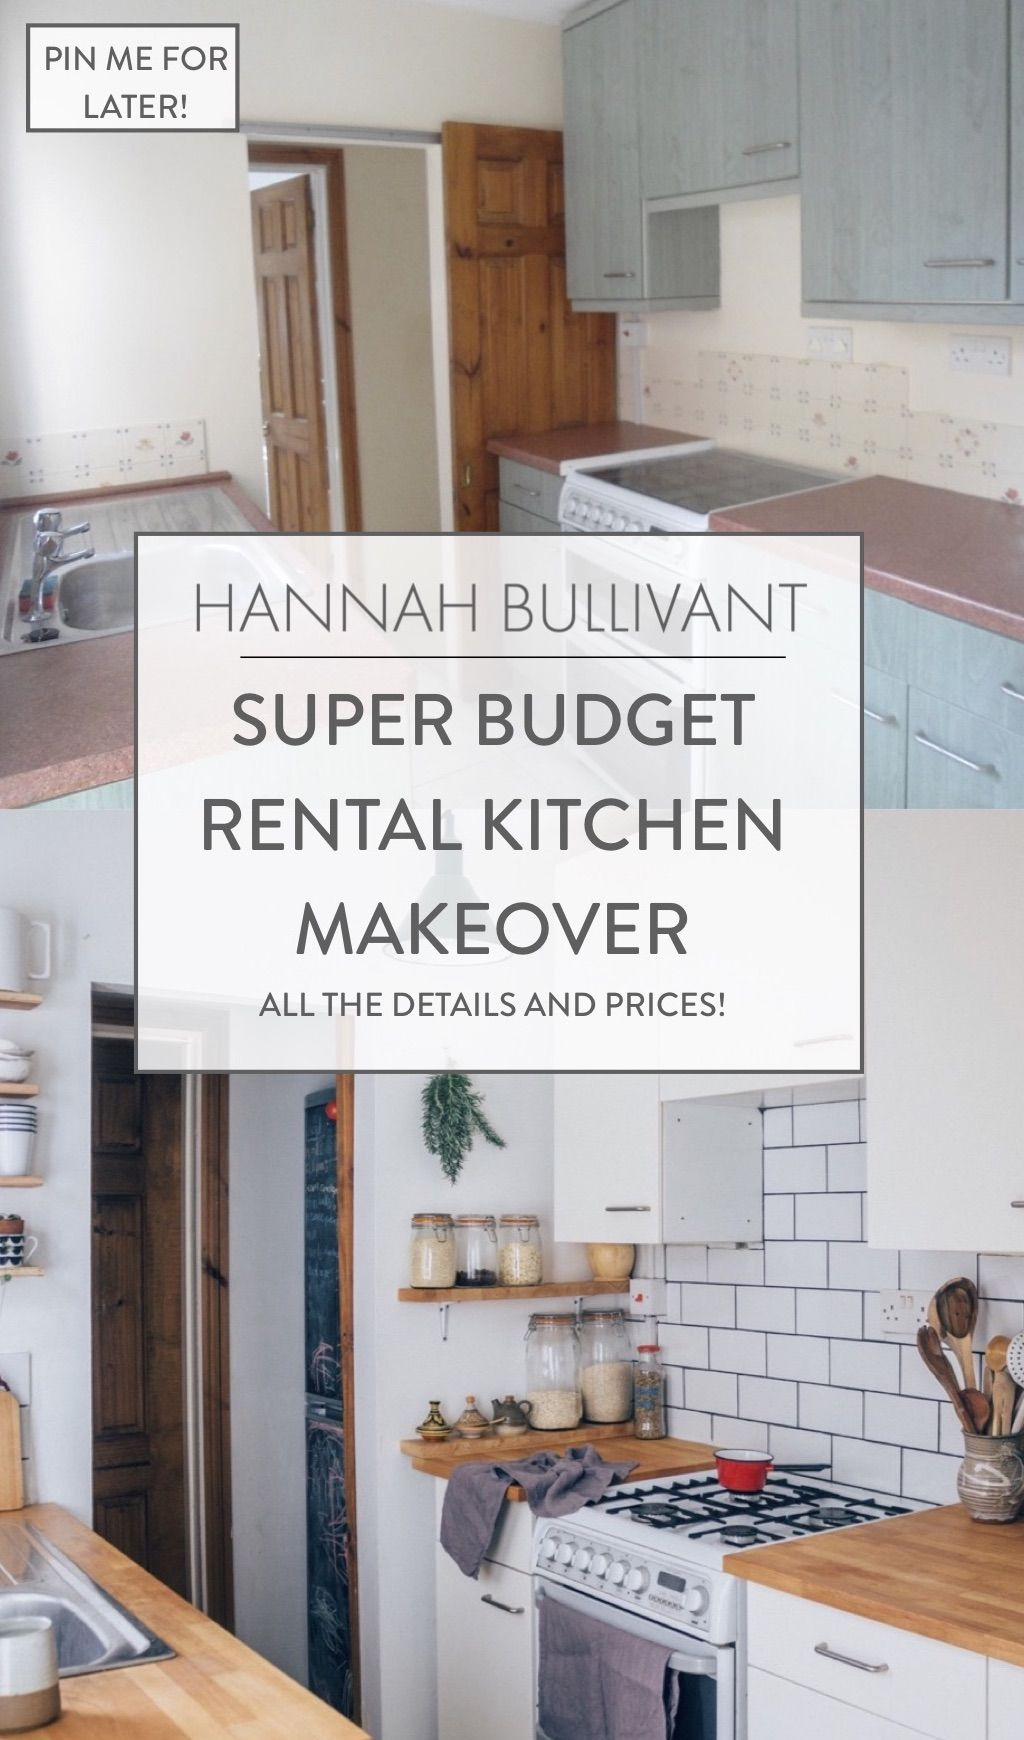 Super Budget Rental Kitchen Makeover — Hannah Bullivant